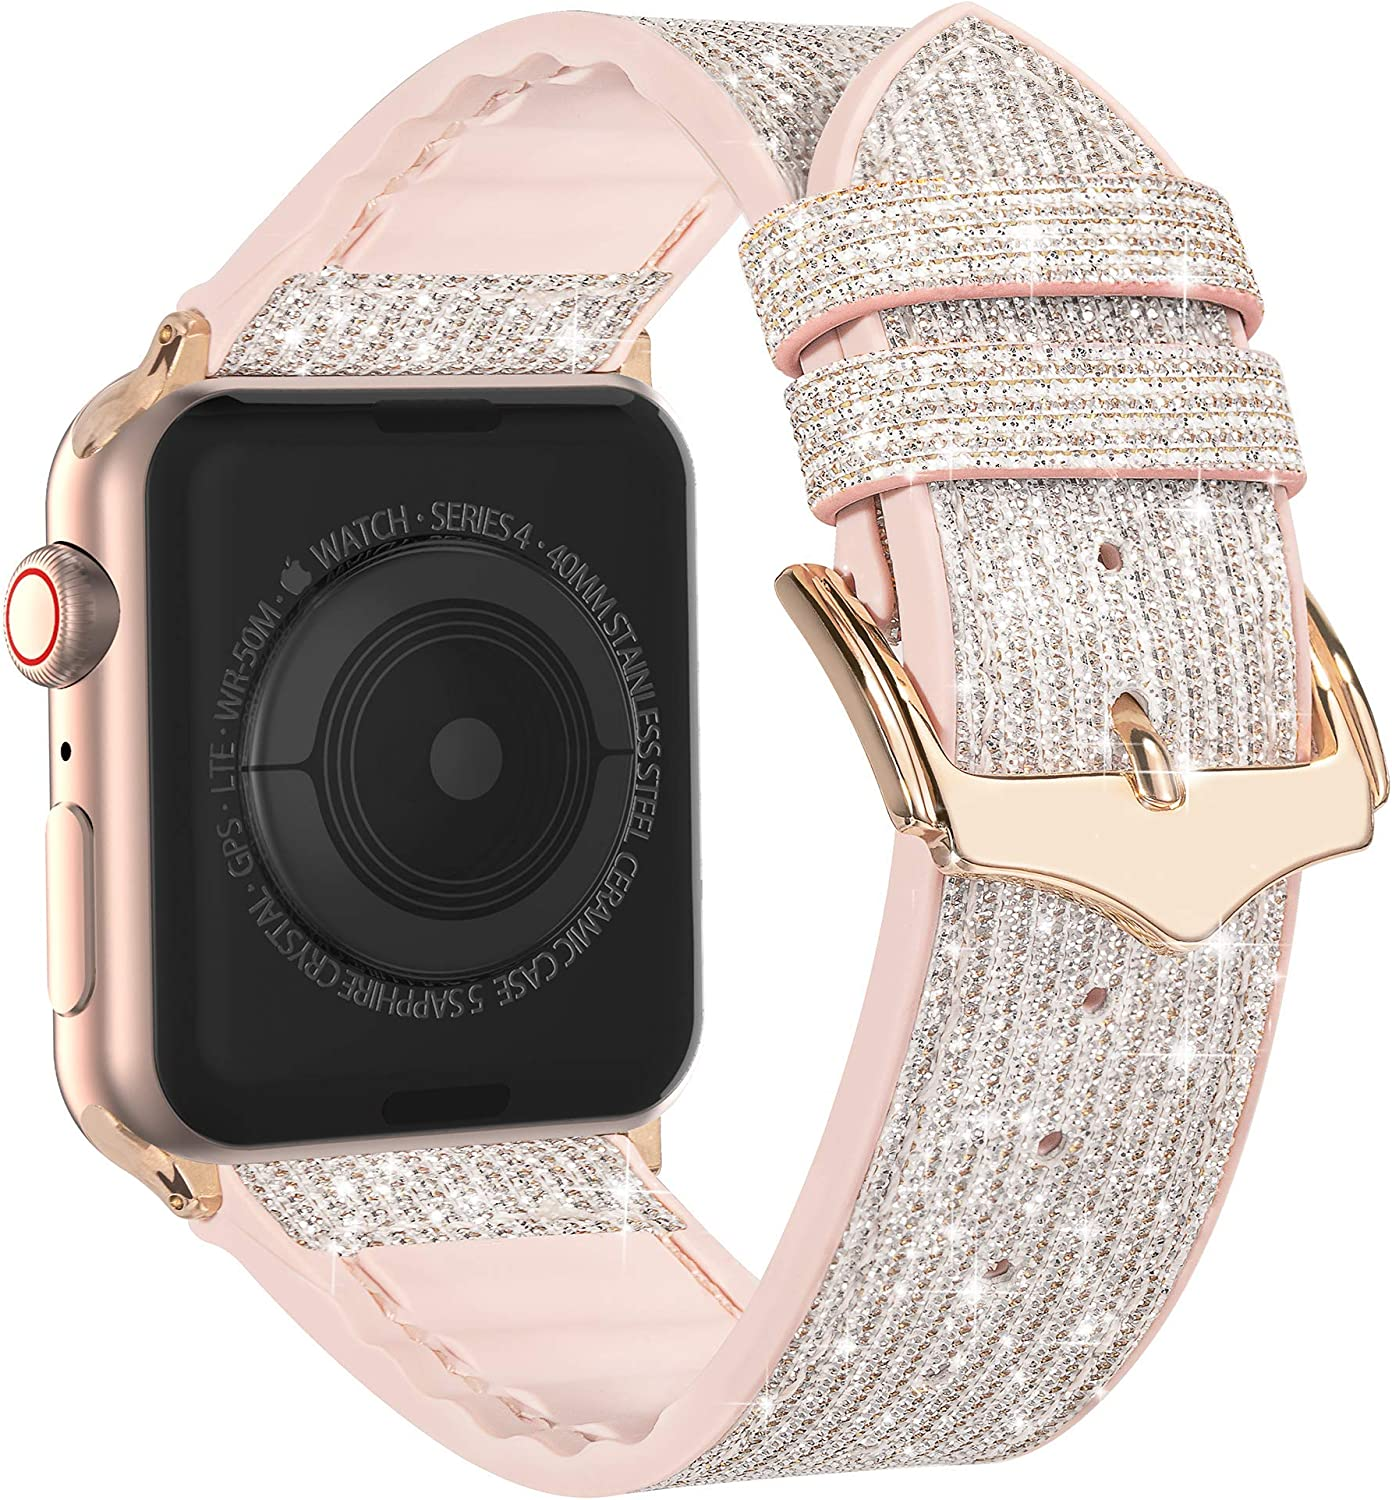 Compatible with Apple Watch Band 38mm 40mm 42mm 44mm, CTYBB Blingbling Sweatproof Genuine Leather and Silicone Band for iWatch SE Series 6 5 4 3 2 1, (Glitter Silver/Rose Gold, 42mm 44mm)